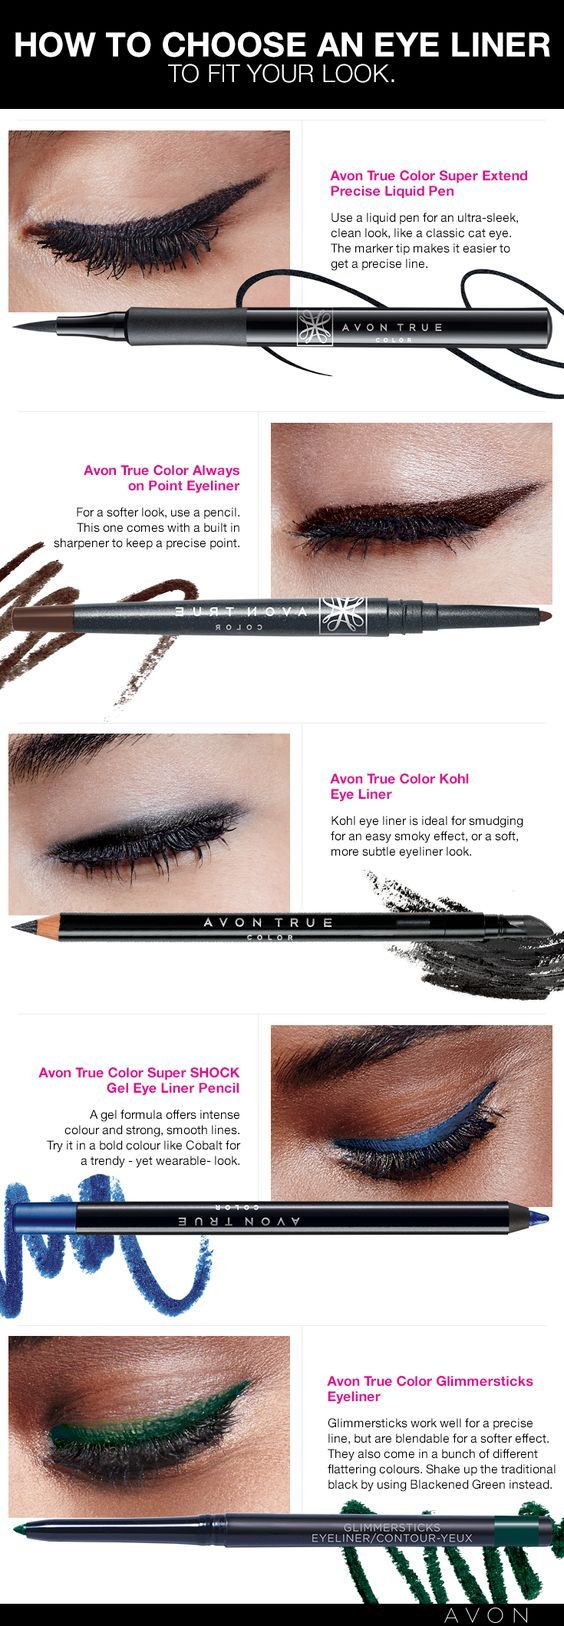 How to choose the perfect Avon Eye Liner just  got easier with the handy chart. Shop Avon eyeliner online at www.youravon.com/my1724 or by clicking the pin to take you to the sales!!